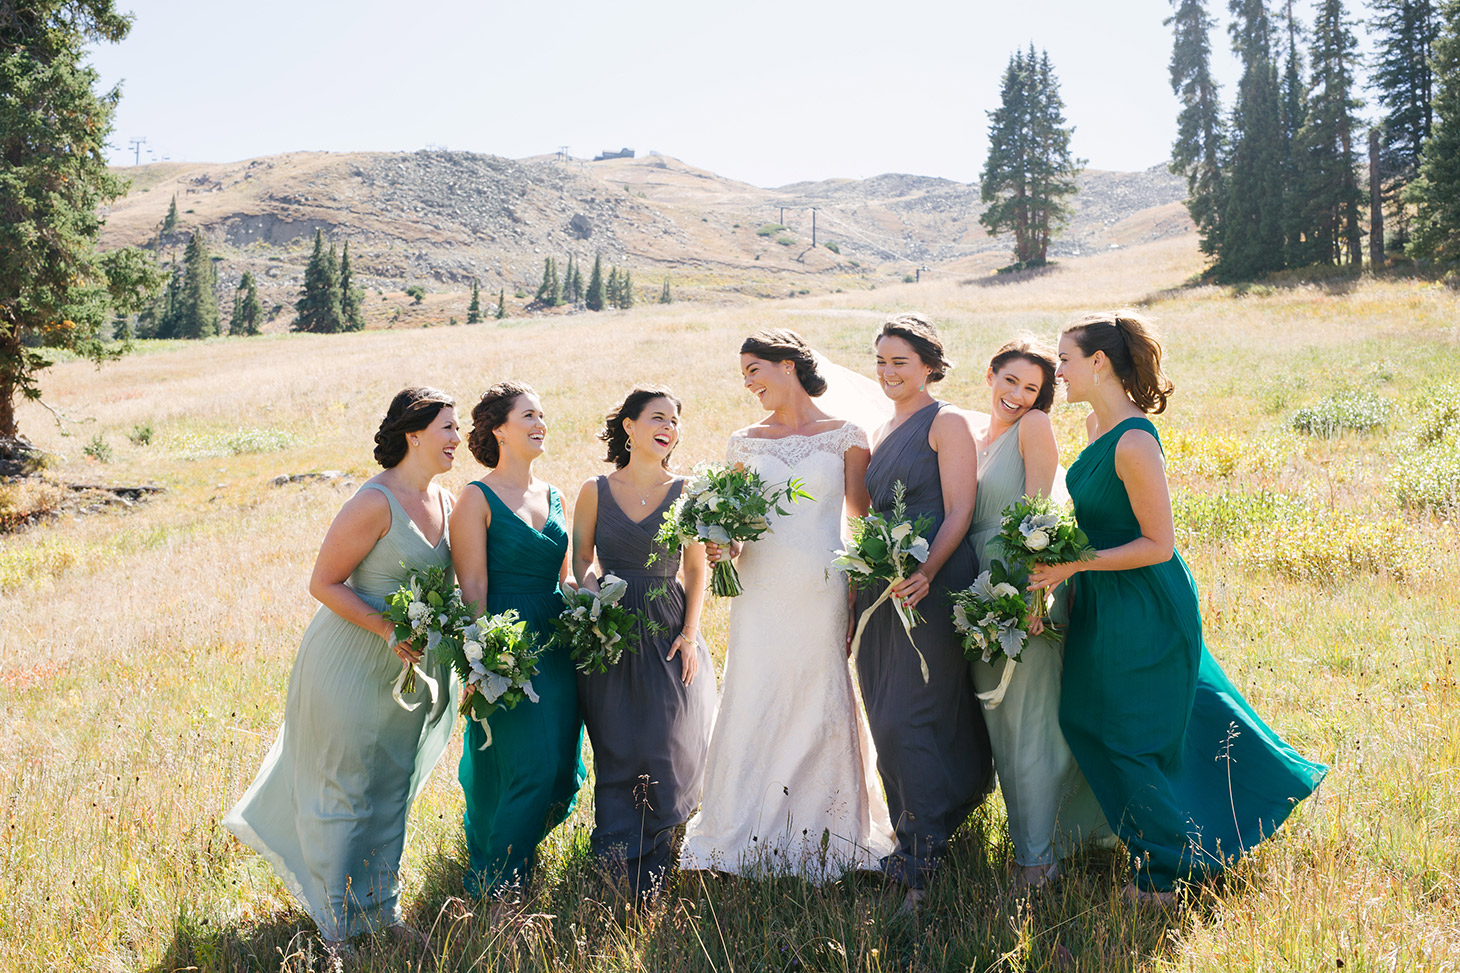 Megan-Newton-Photography-Best-Wedding-Photos-2015-274